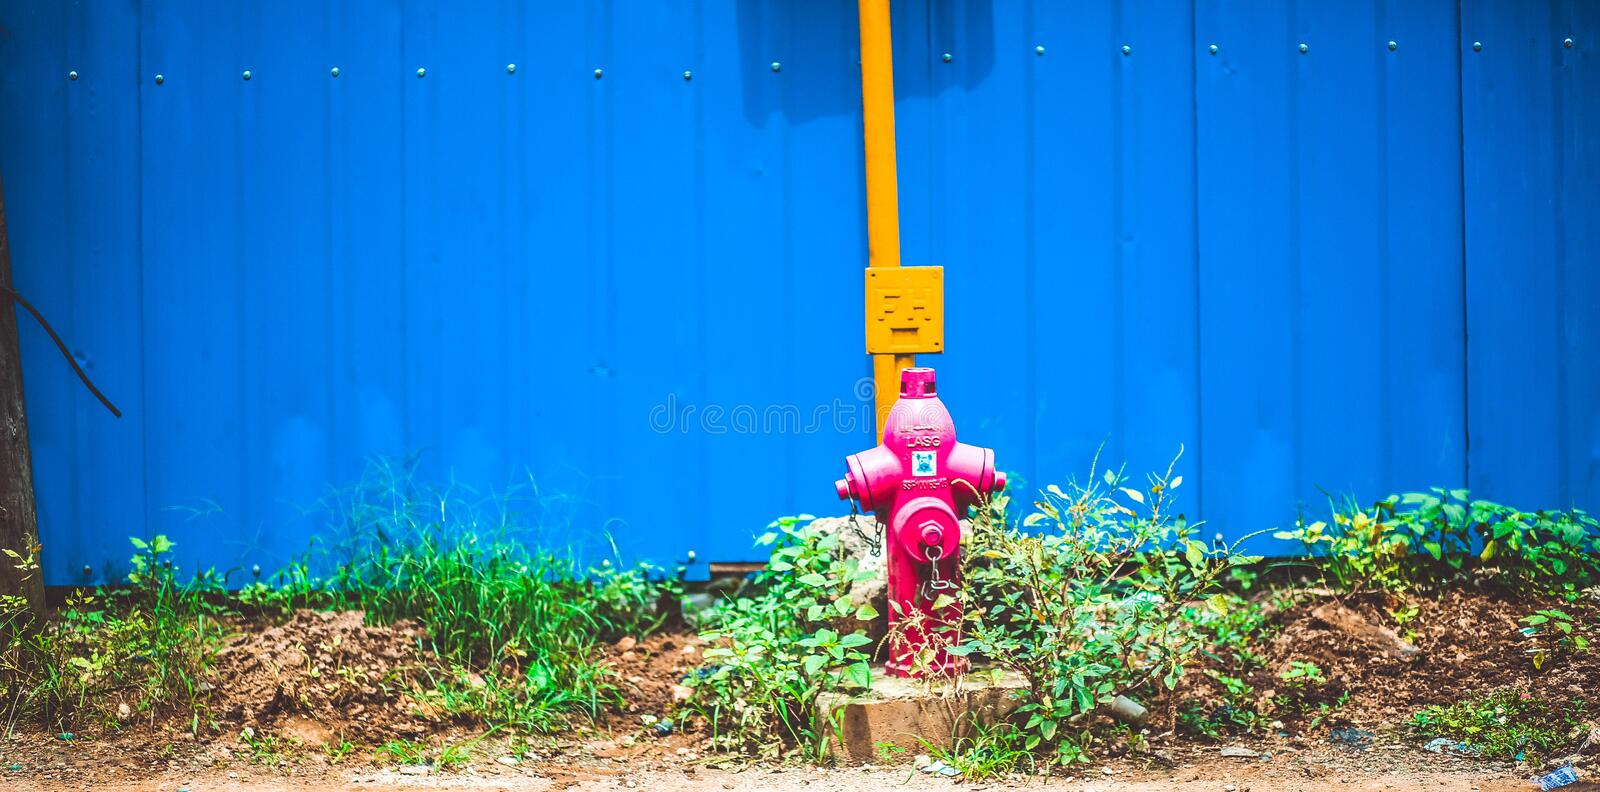 Pink Steel Water Pump Behind Blue Fence Free Public Domain Cc0 Image